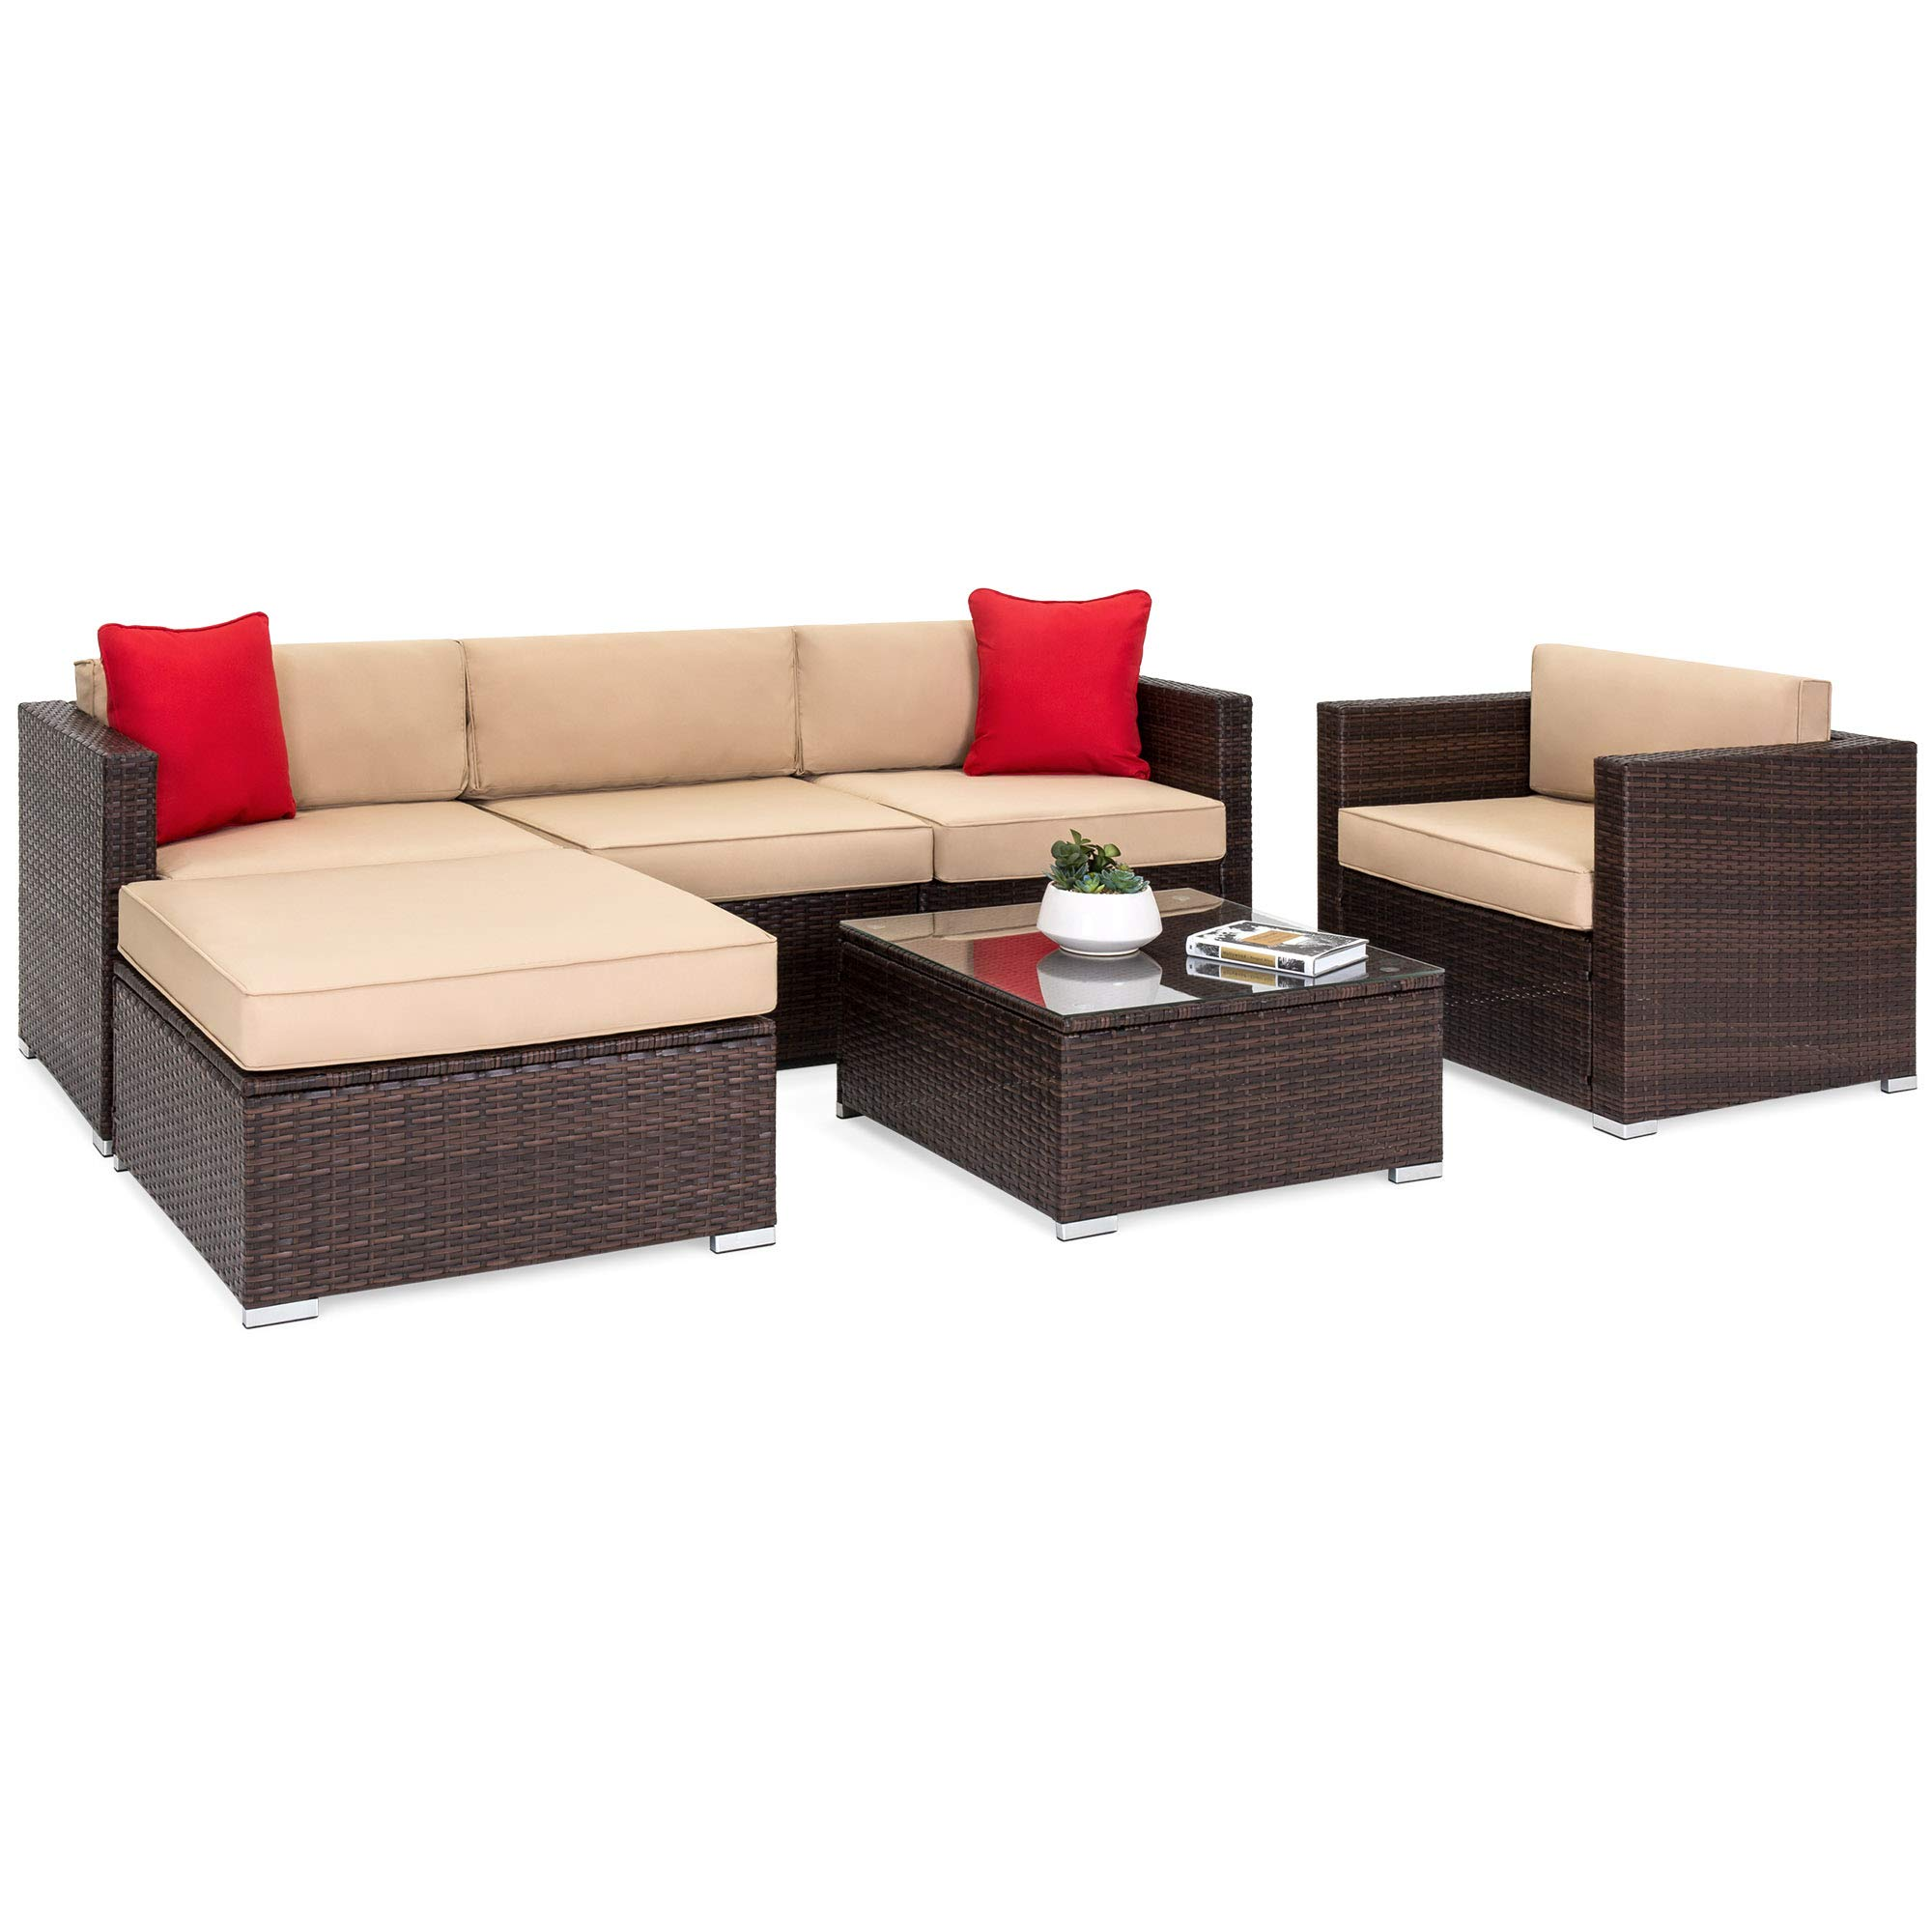 Best Choice Products 6-Piece Outdoor Patio Sectional Wicker Furniture Set with Sofa, Seat Cushions, Accent Chair, Ottoman, Glass Coffee Table and 2 Red Pillows for Backyard, Pool, Garden, Brown